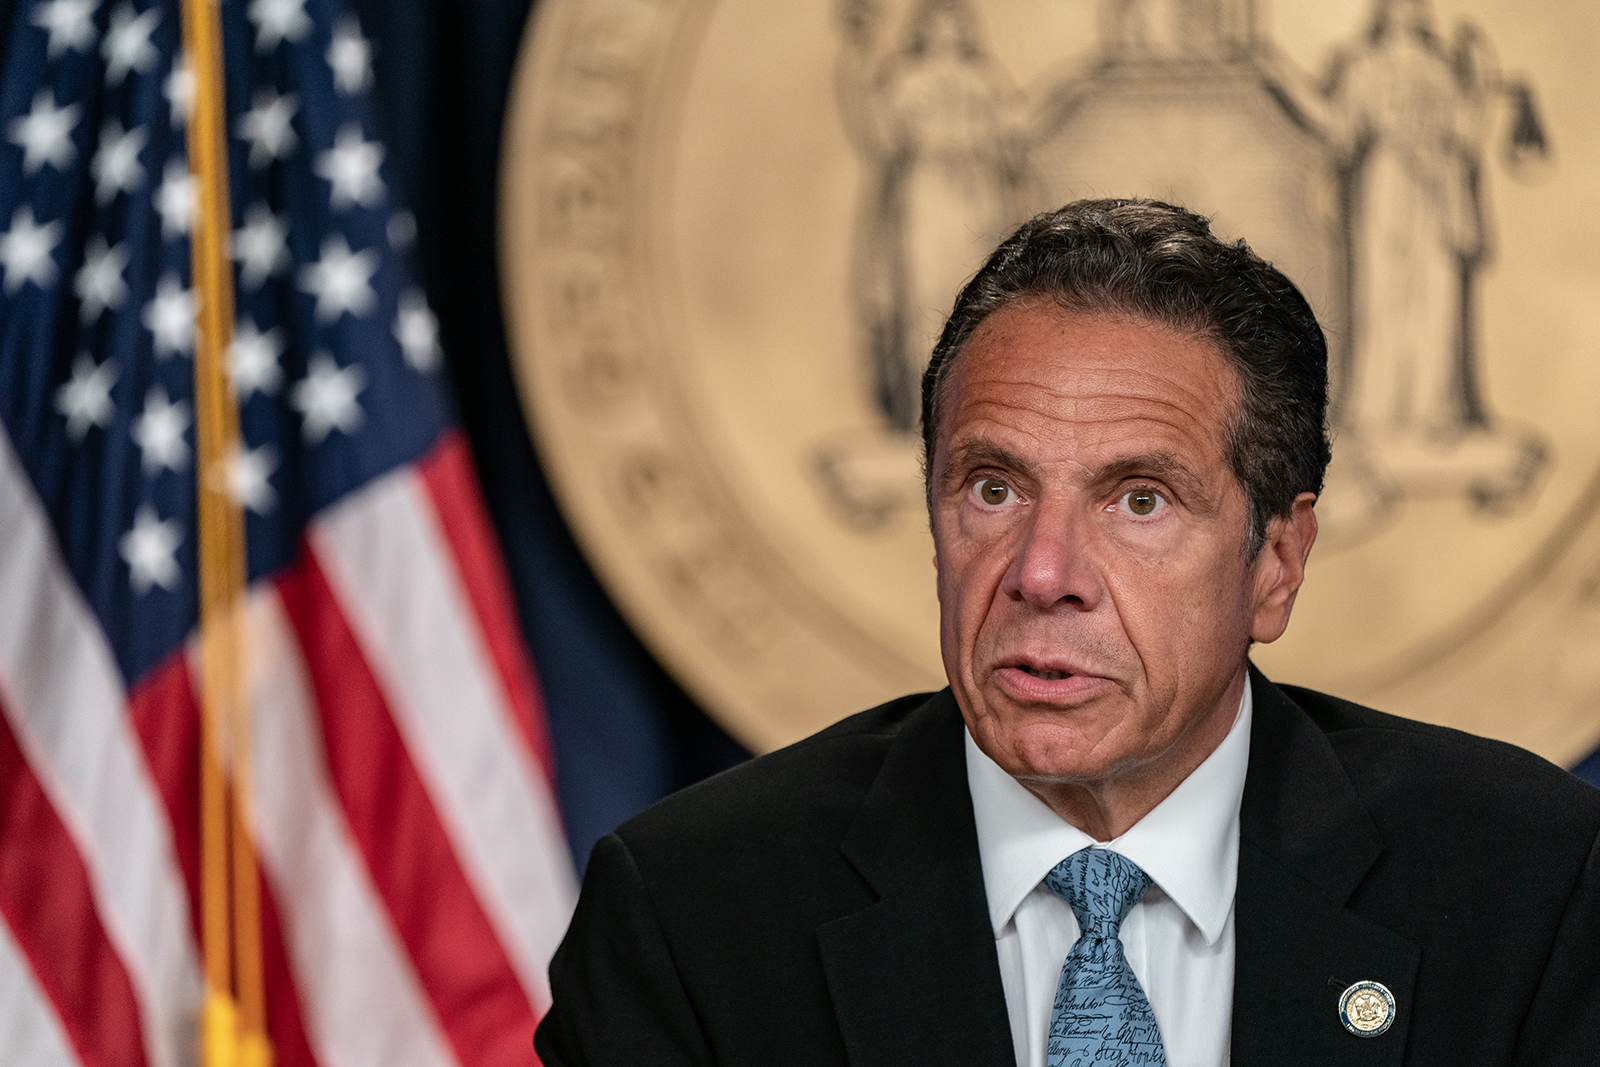 84 New York Bars And Restaurants Violated Covid 19 Rules Governor Says